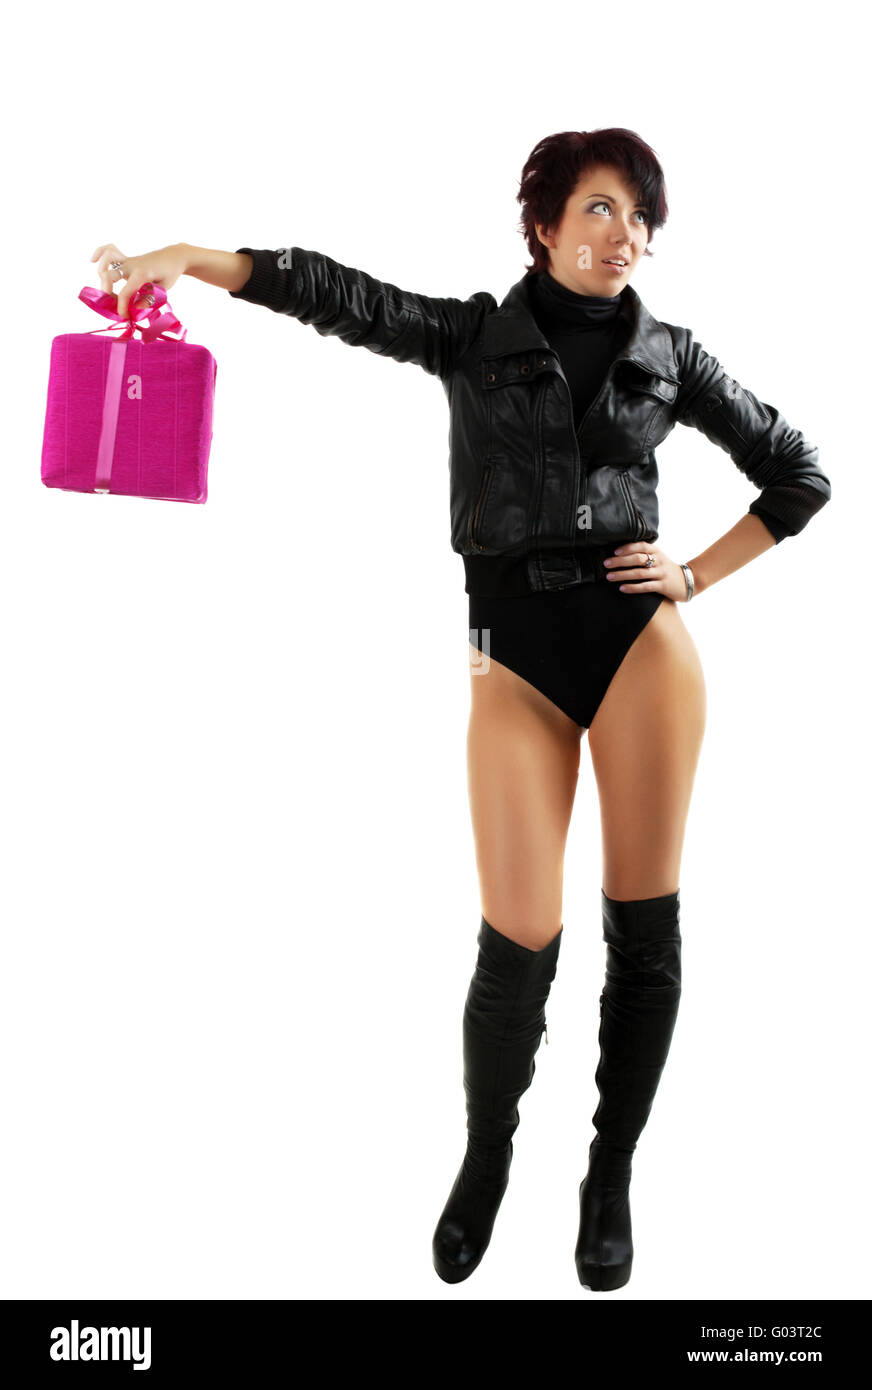 2f43d14199af7 beauty teen woman in leather jacket and high heels boots disappointed over  gift